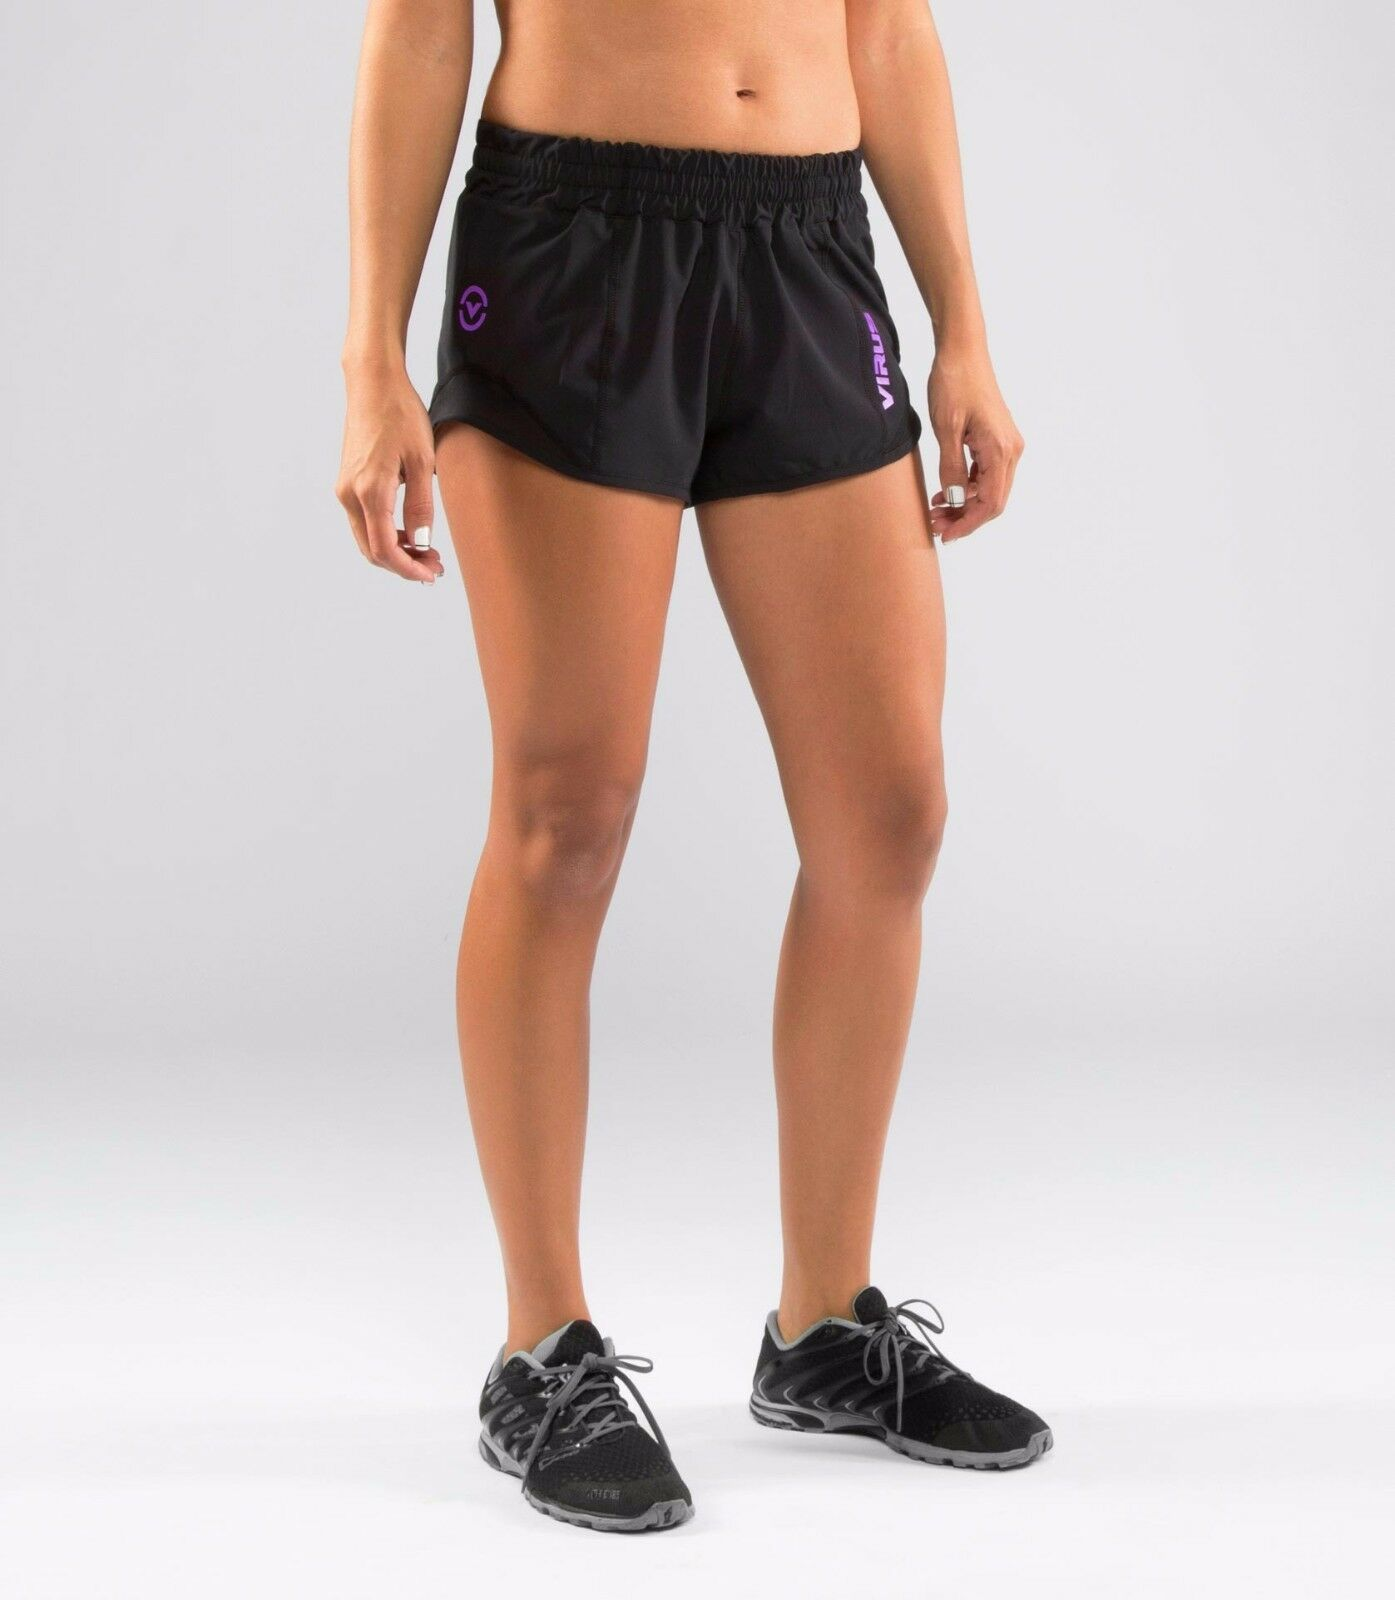 Virus Women's Loose Fit TRACE ECO25 Training shorts. Crossfit. Workout. Running